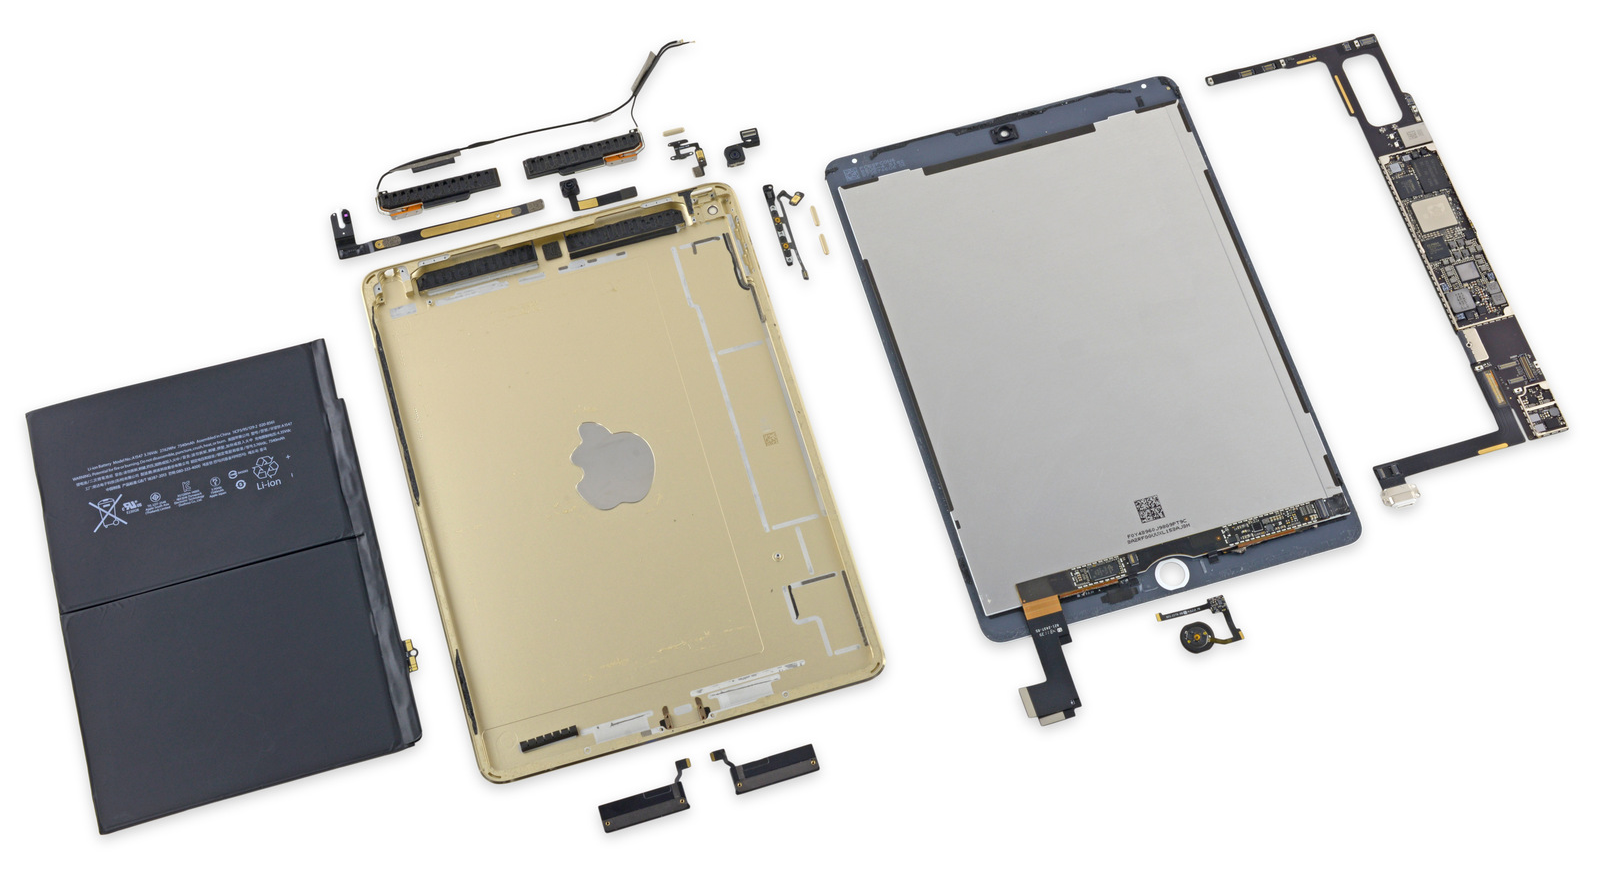 iPad Air 2 iFixit